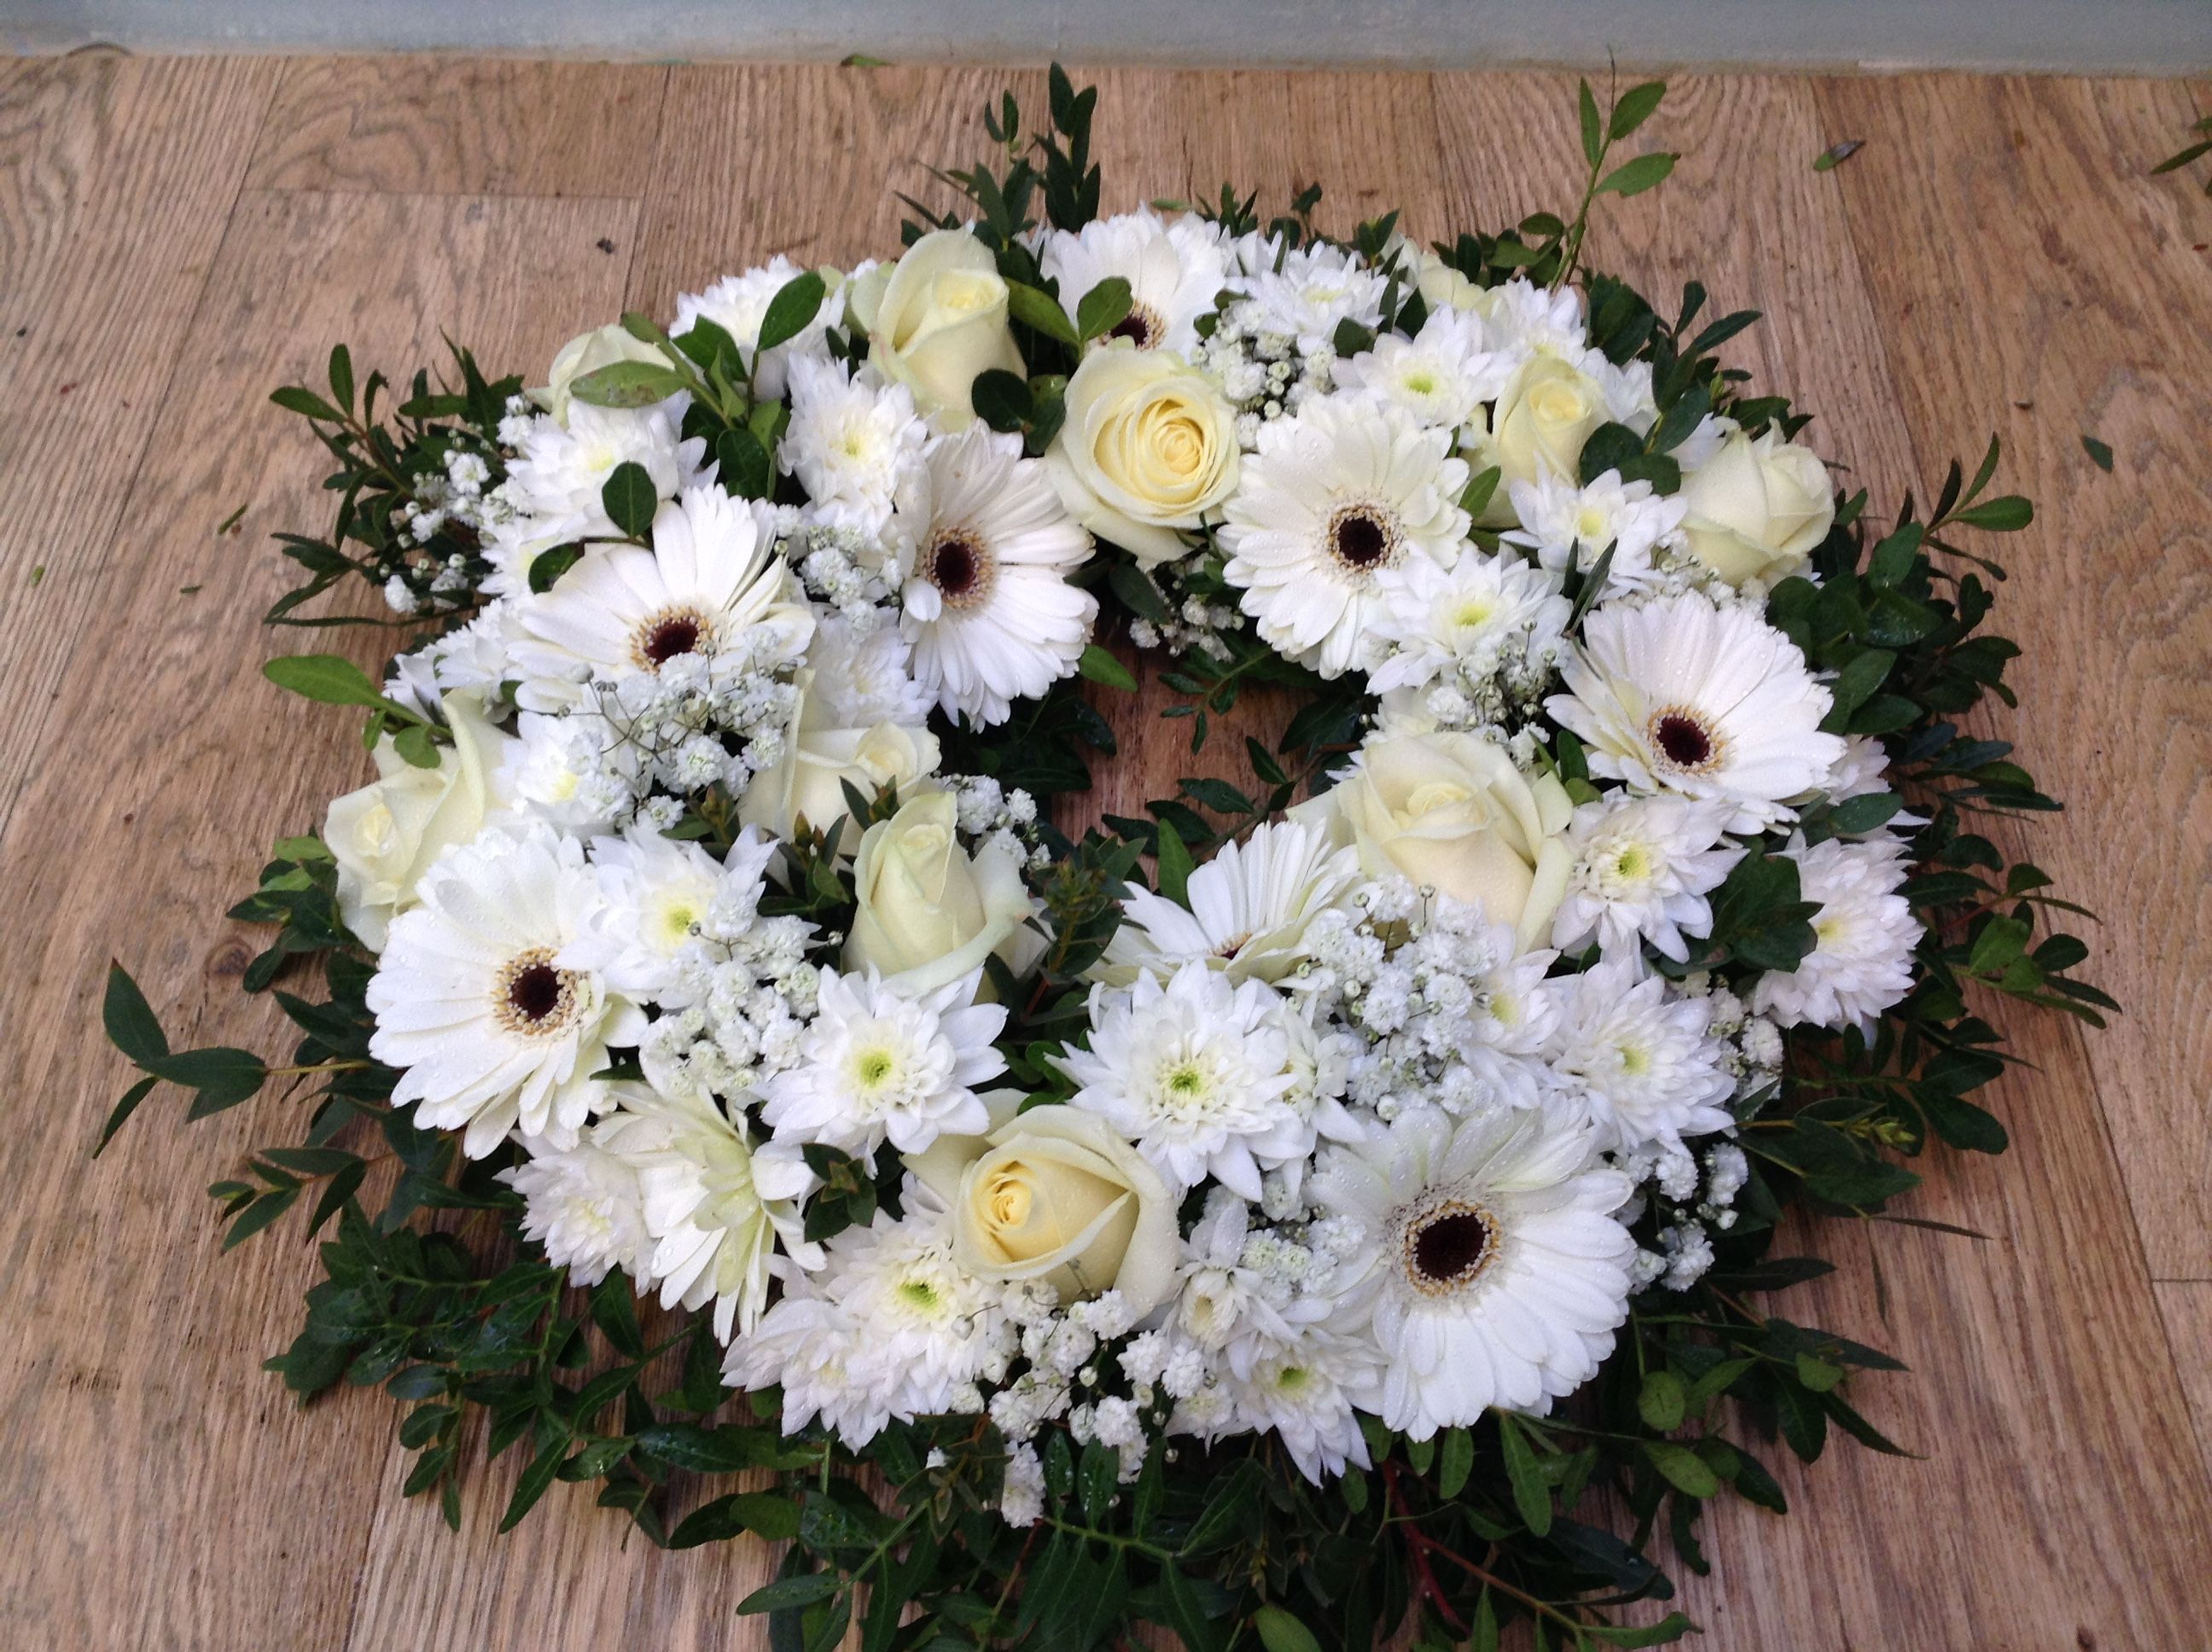 White And Green Funeral Wreath Funeral Flowers Pinterest Green